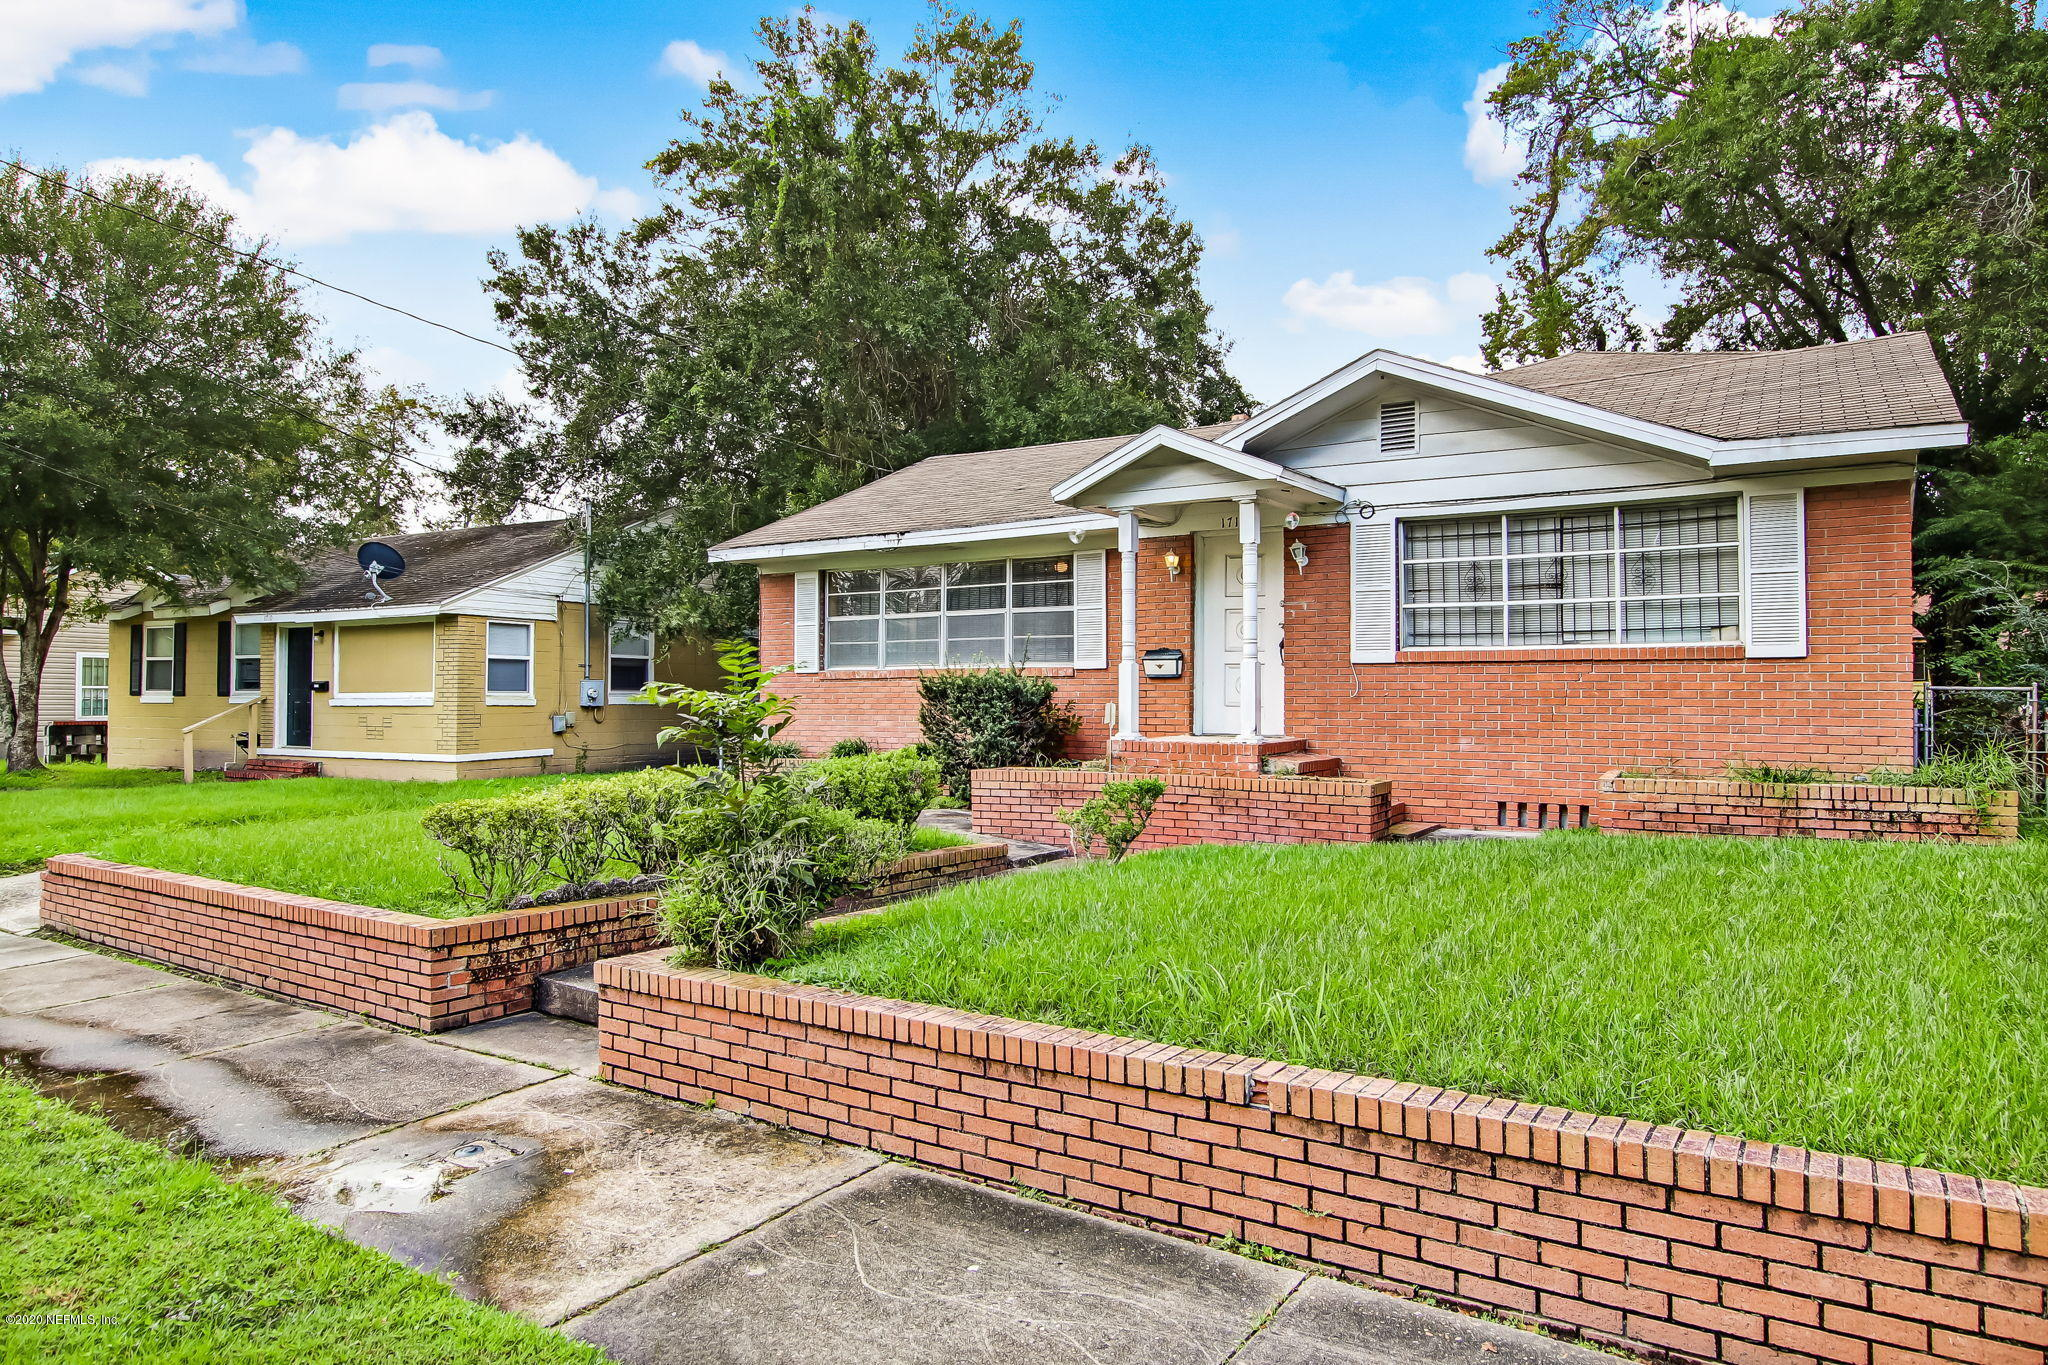 1716 ACADEMY, JACKSONVILLE, FLORIDA 32209, 4 Bedrooms Bedrooms, ,2 BathroomsBathrooms,Investment / MultiFamily,For sale,ACADEMY,1079625